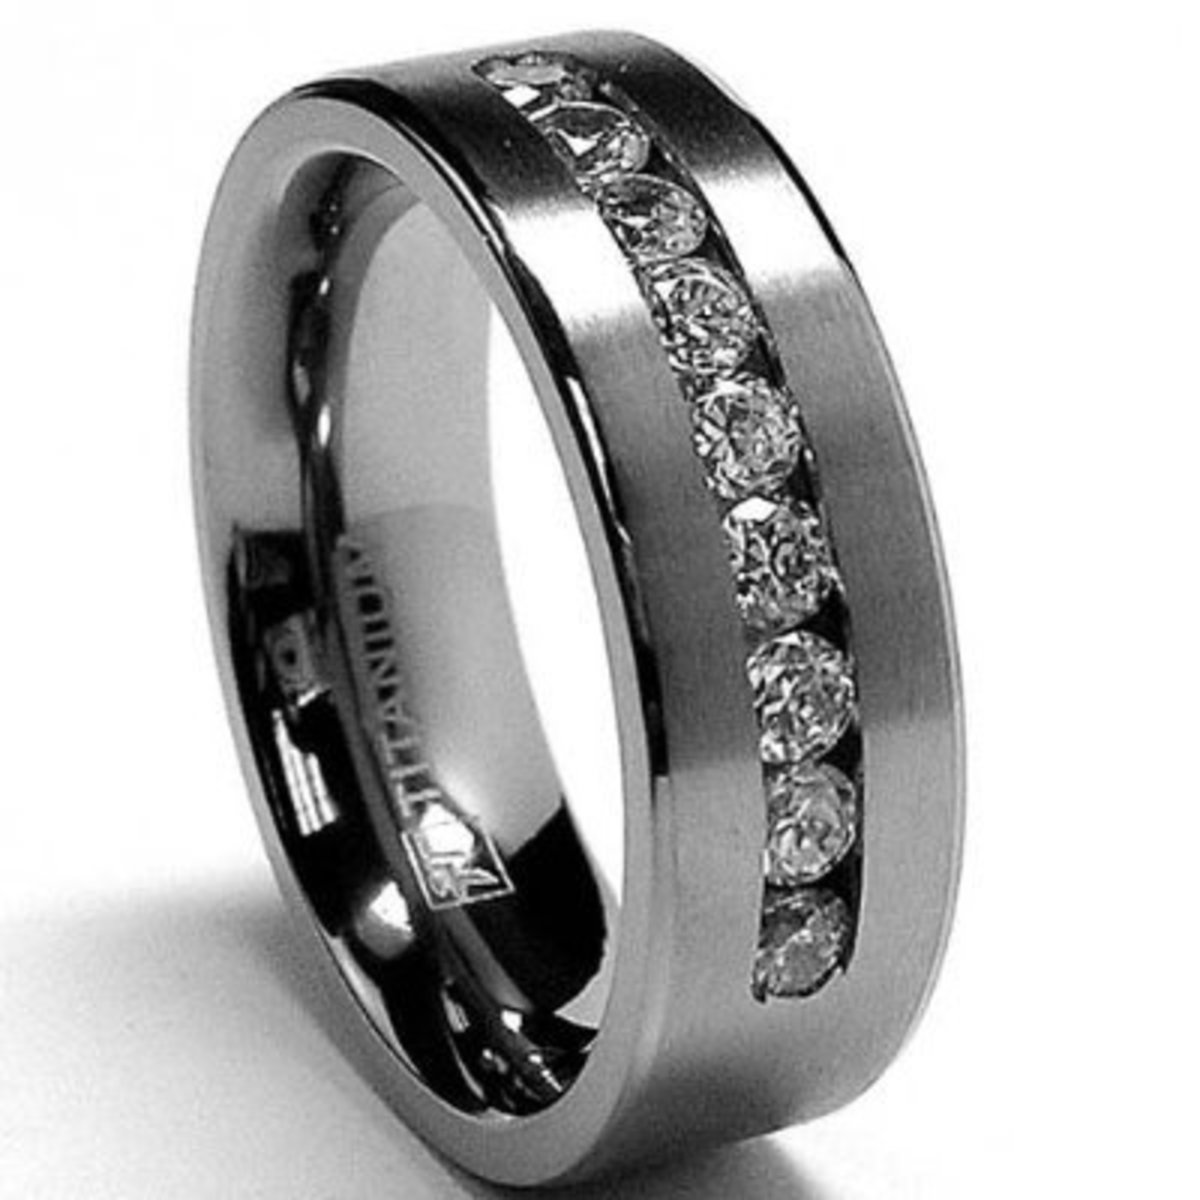 Metal Masters Co. men's rings – Buy Stylish Titanium and Tungsten rings online